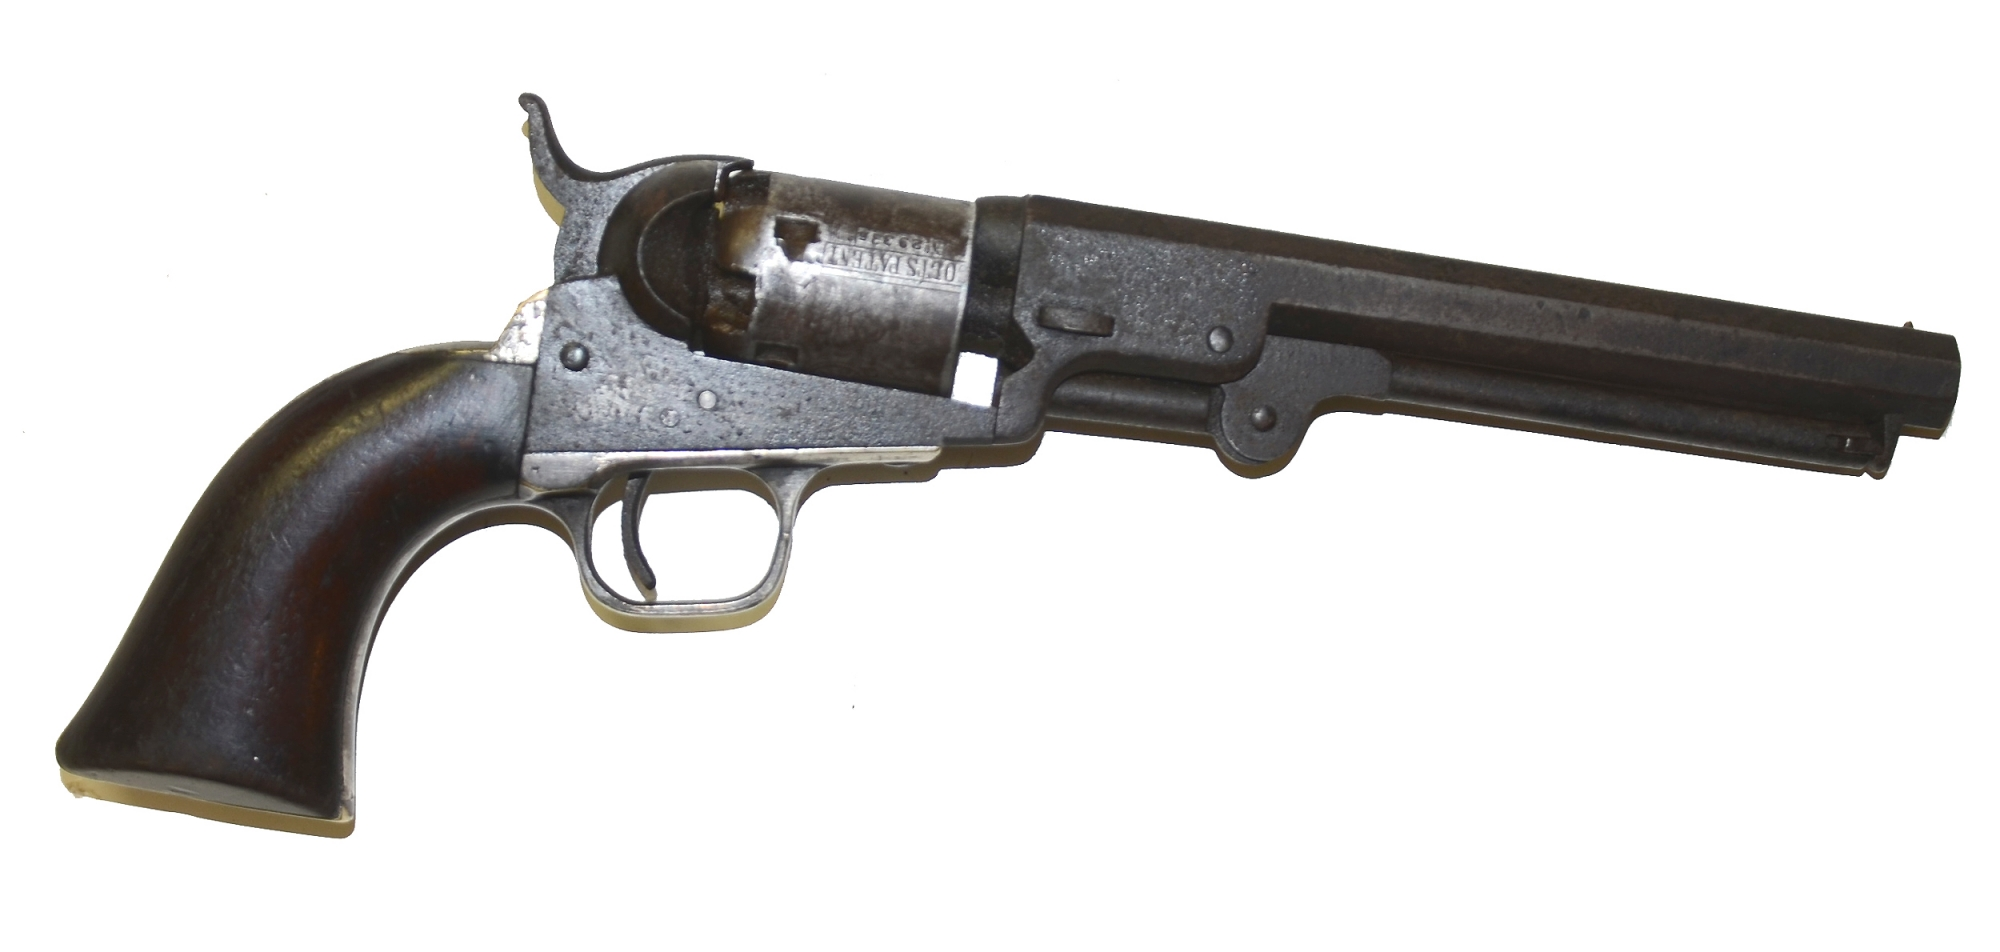 IDENTIFIED M1849 COLT POCKET REVOLVER WITH ALL MATCHING SERIAL NUMBERS